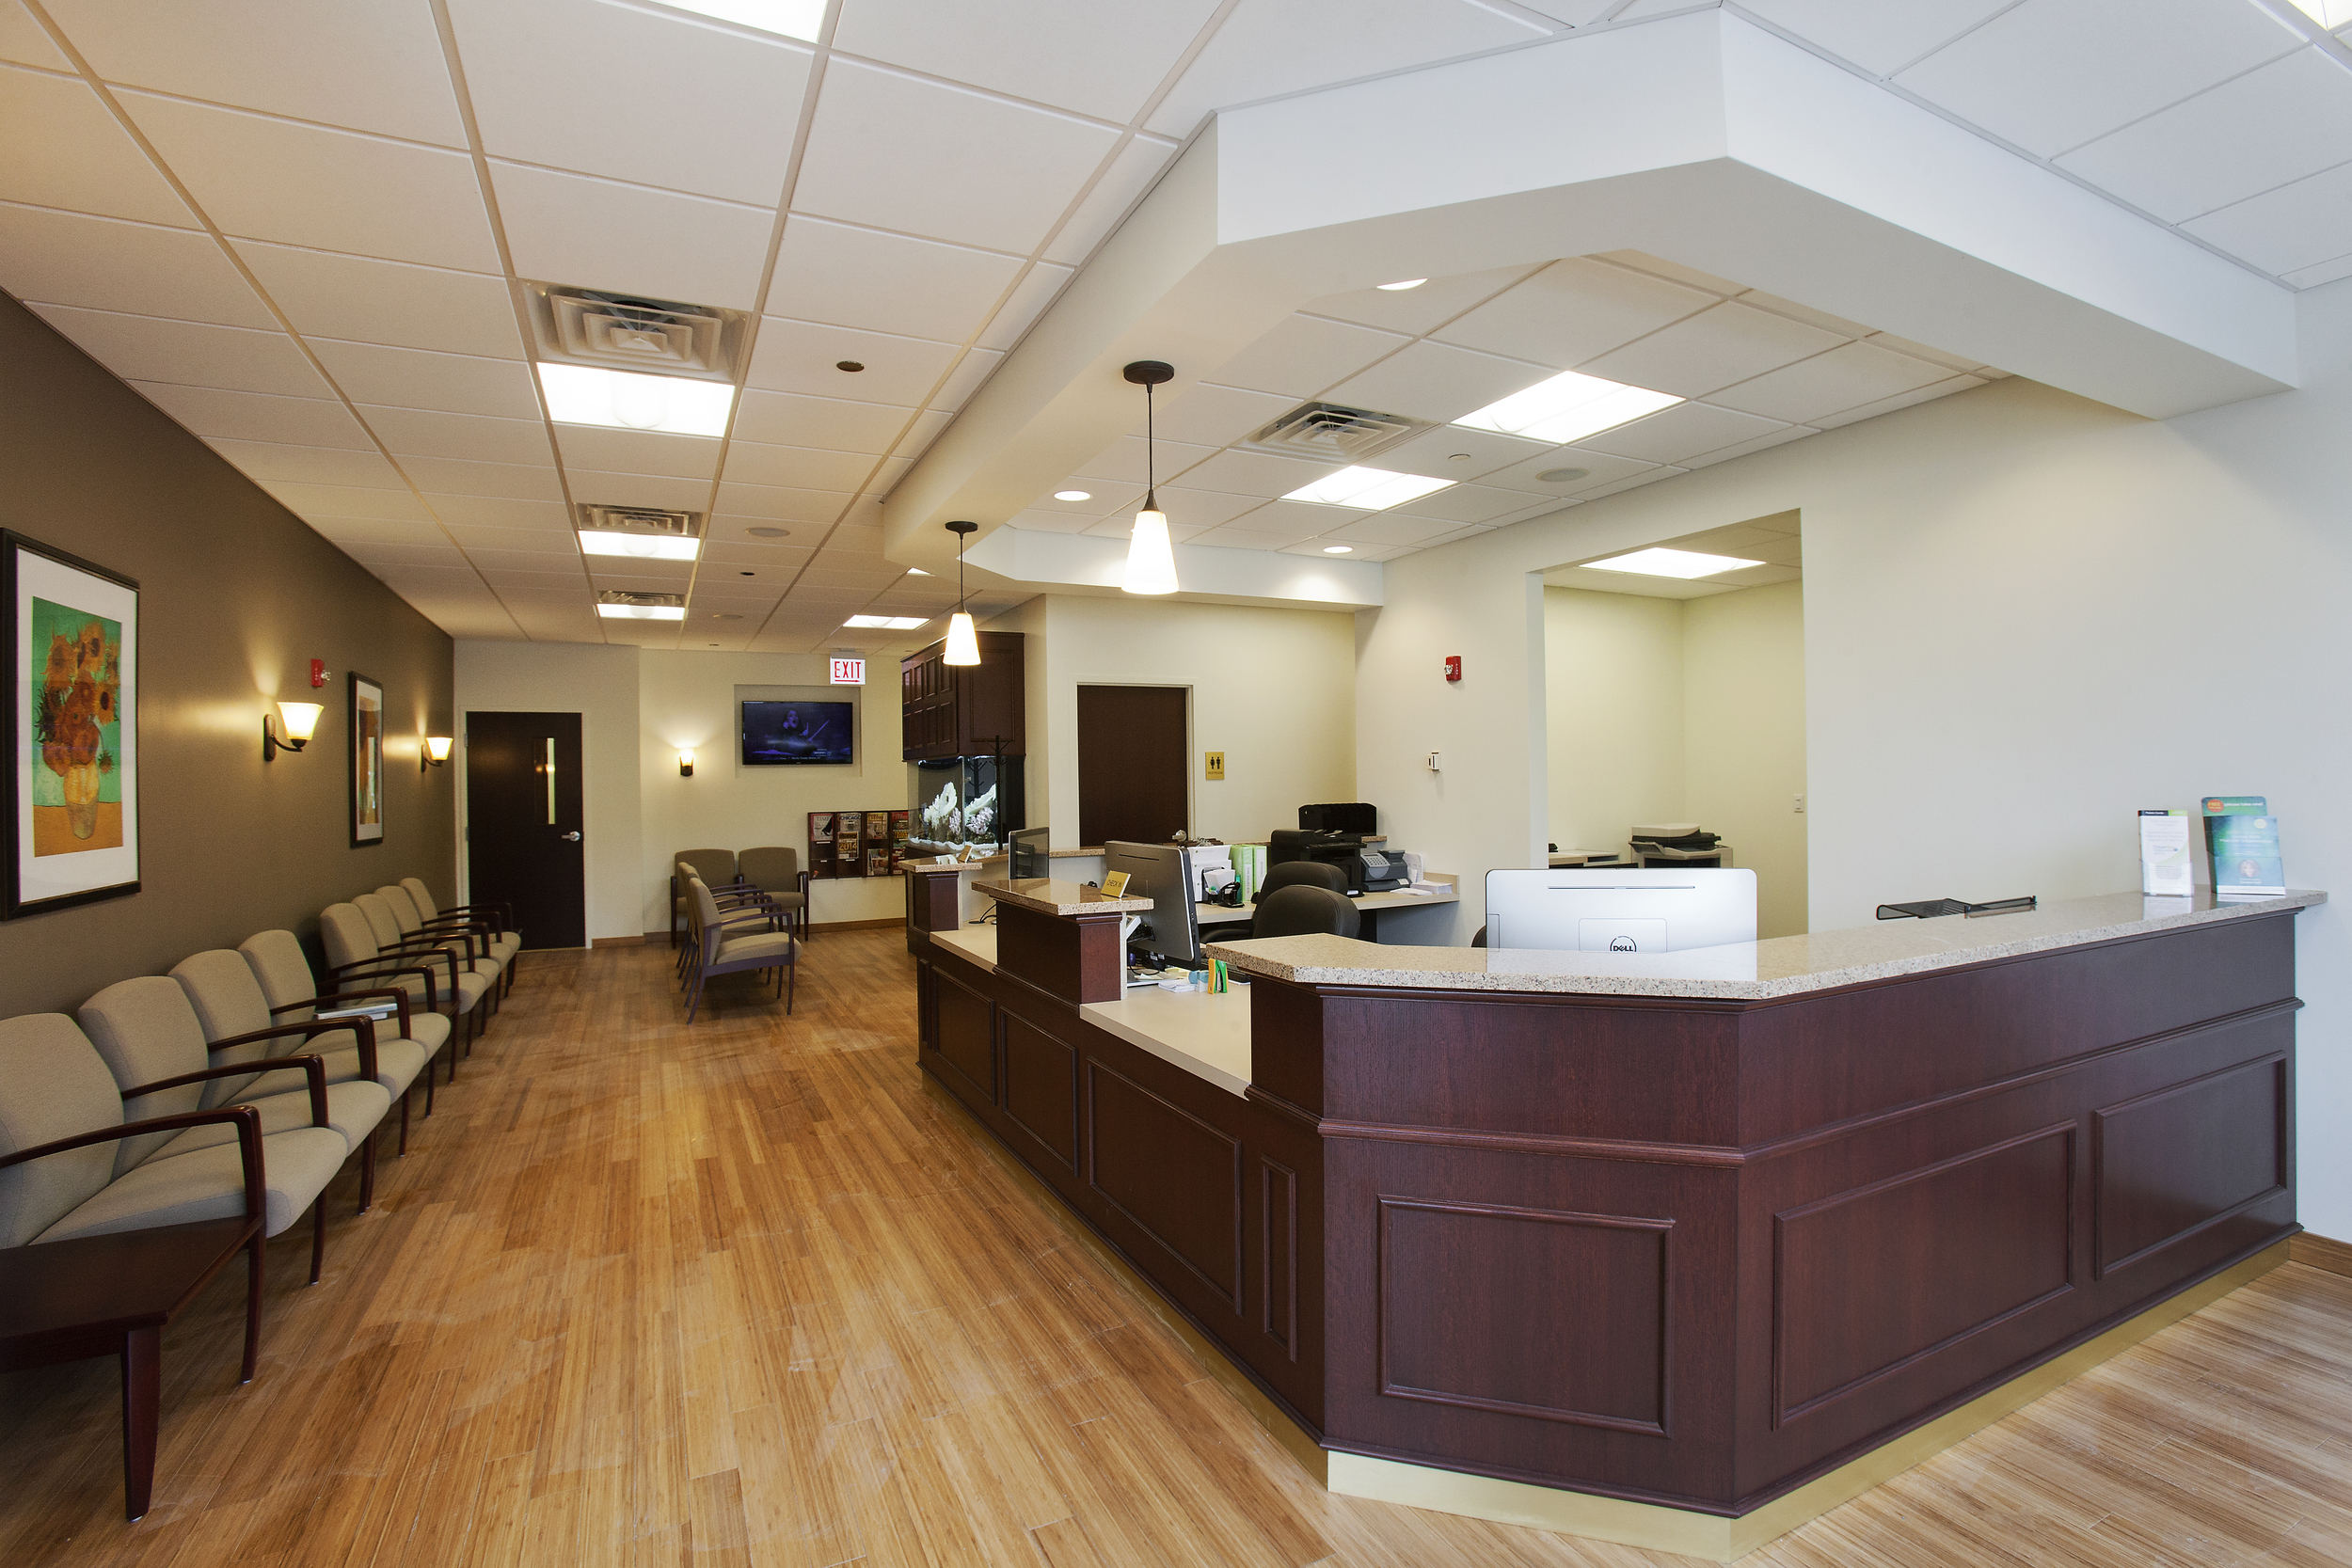 Berwyn Eye Surgery center